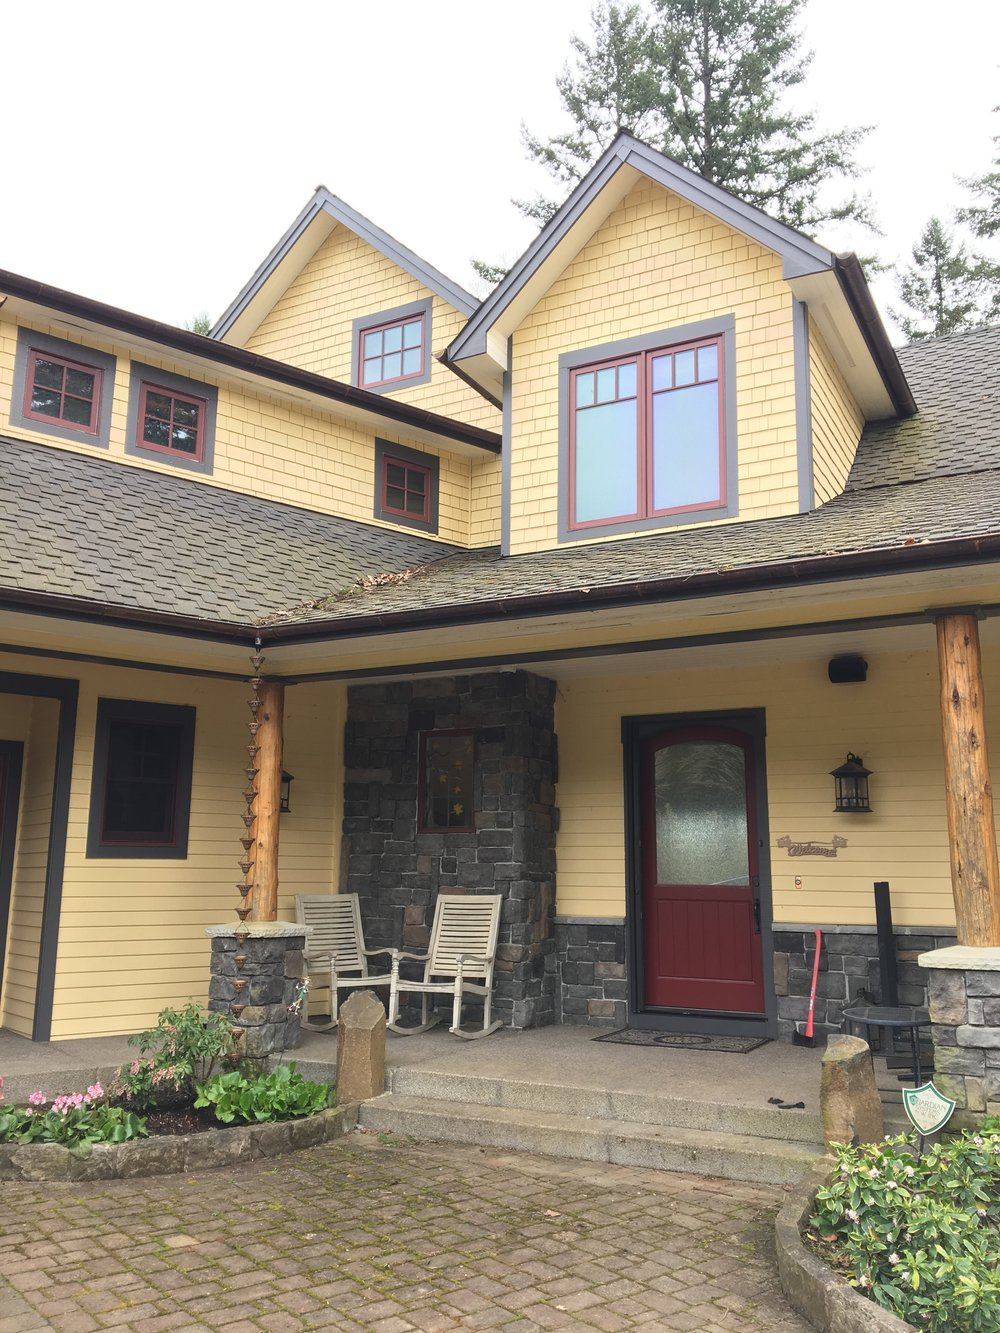 Exterior Paint Color Scheme by  colormoxie